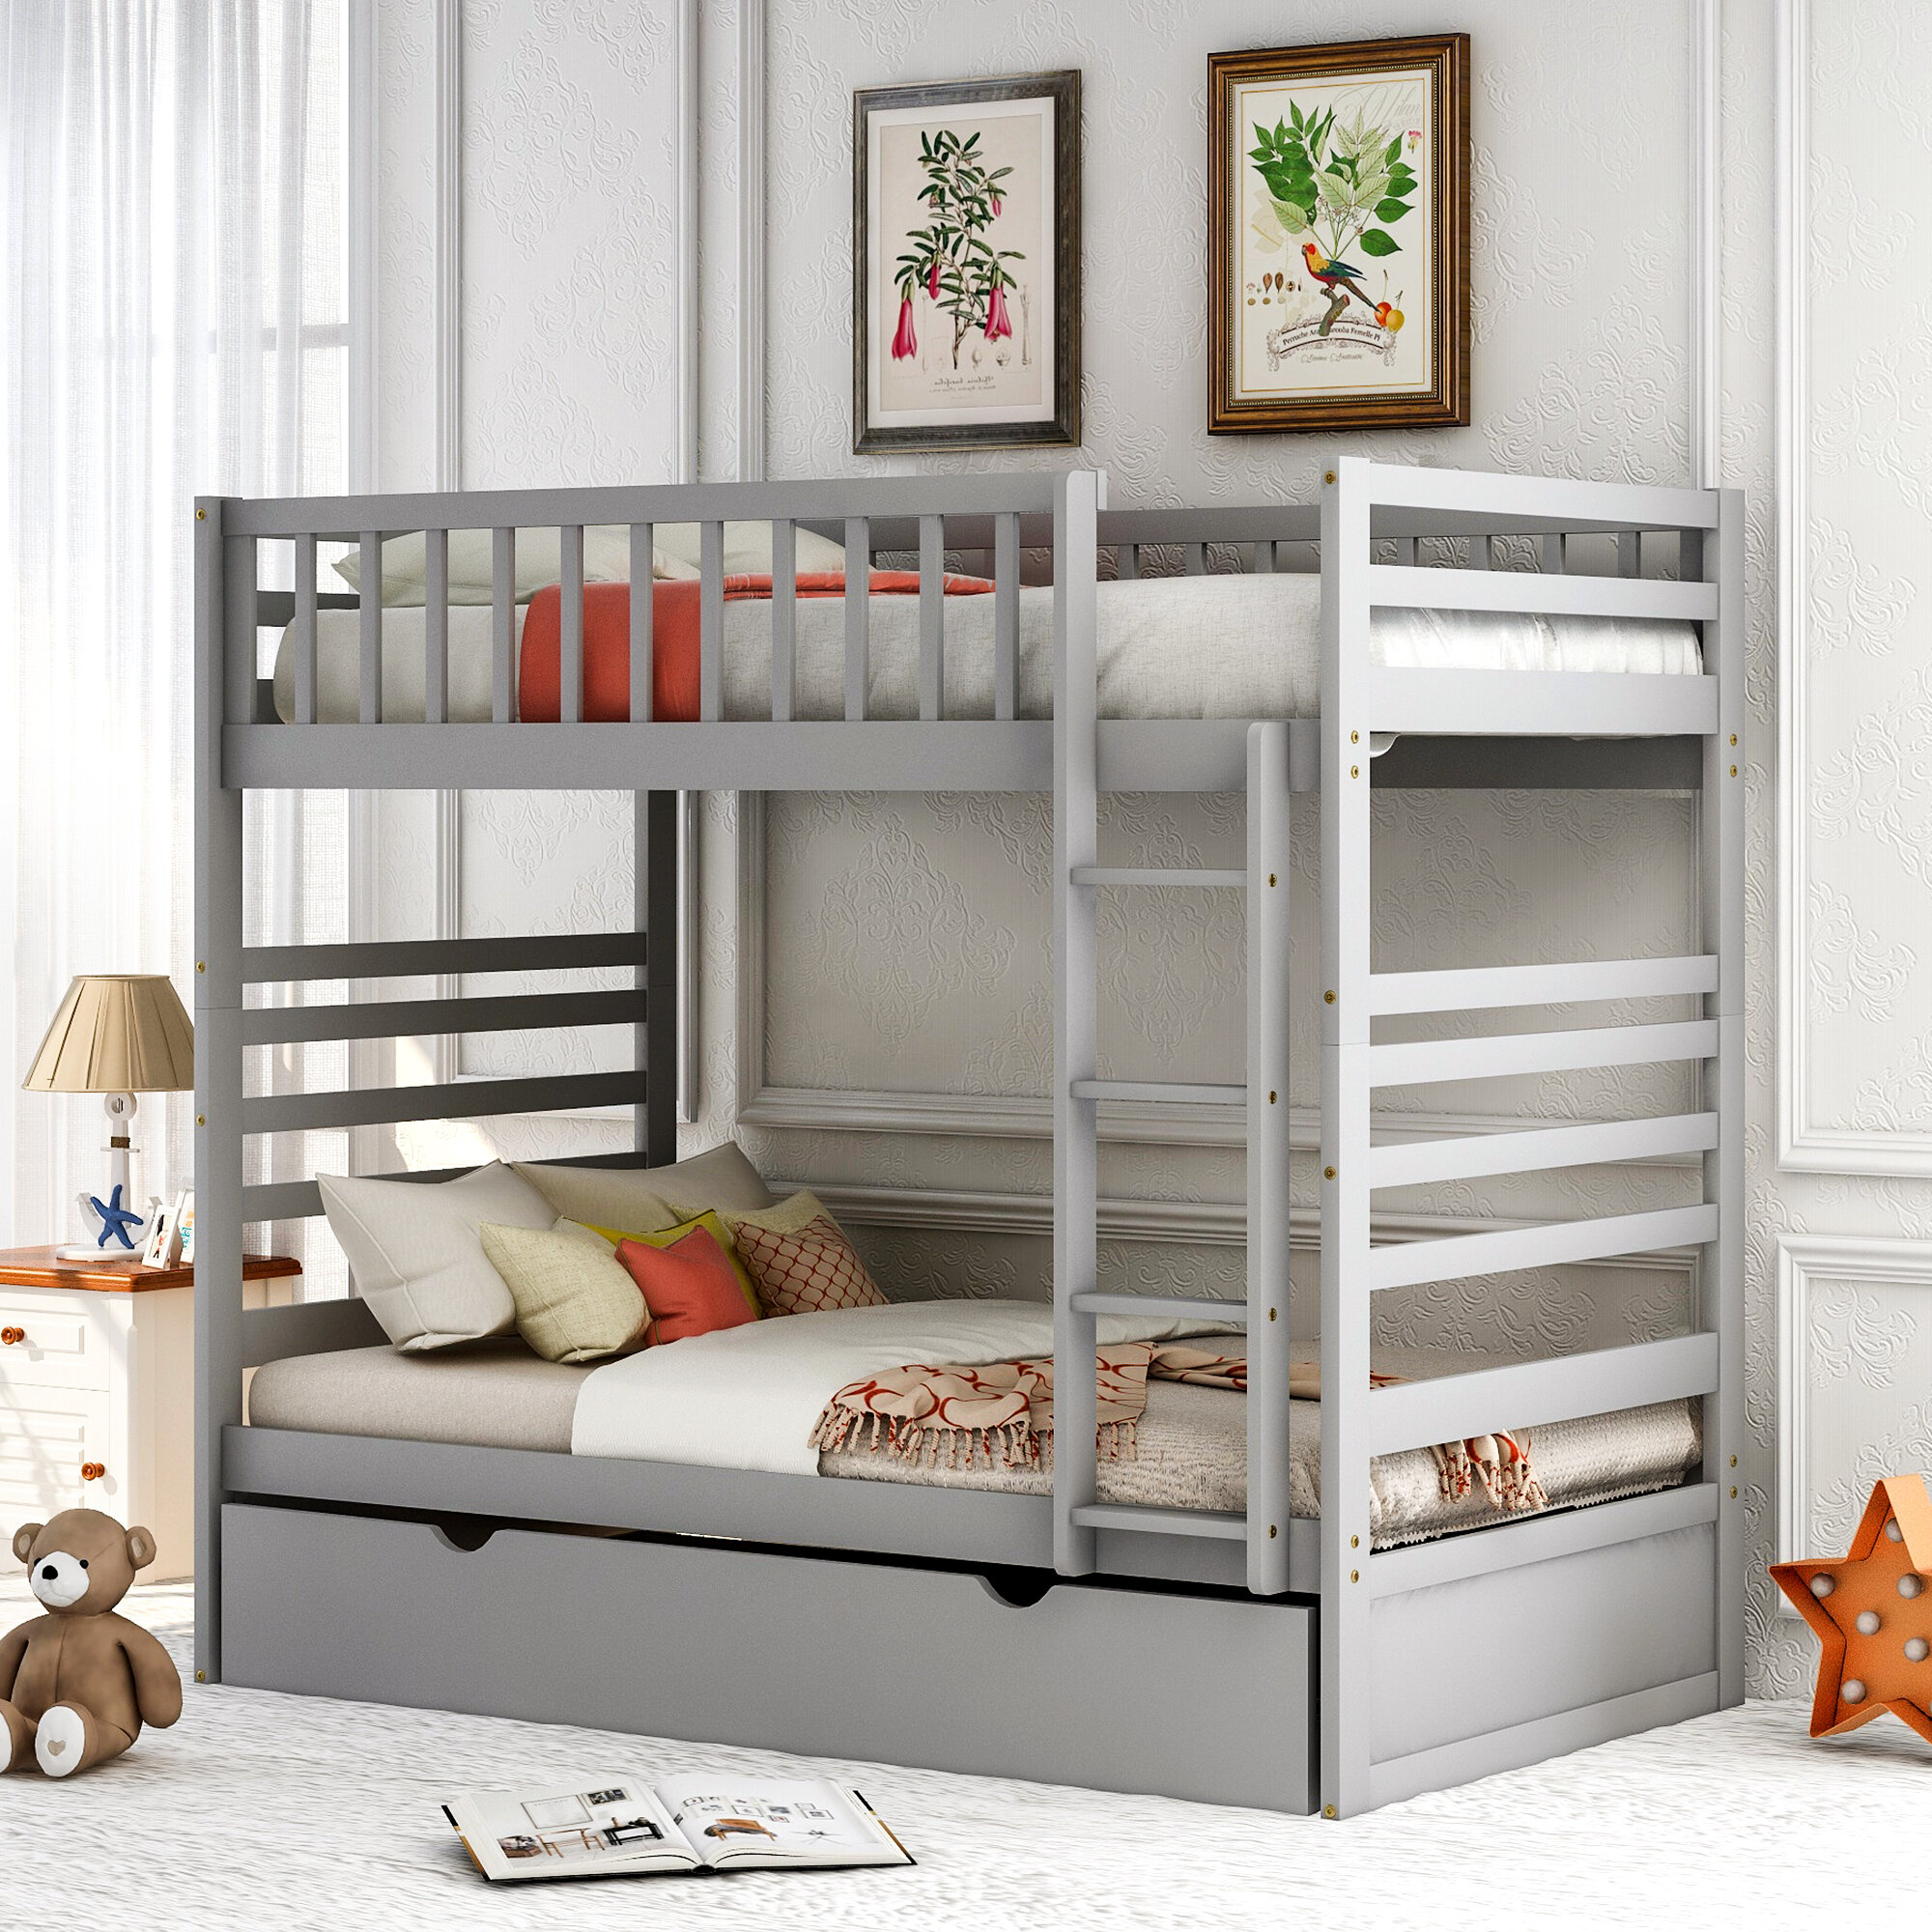 Picture of: Harriet Bee Elutheria Twin Over Twin Bunk Bed With Trundle Wayfair